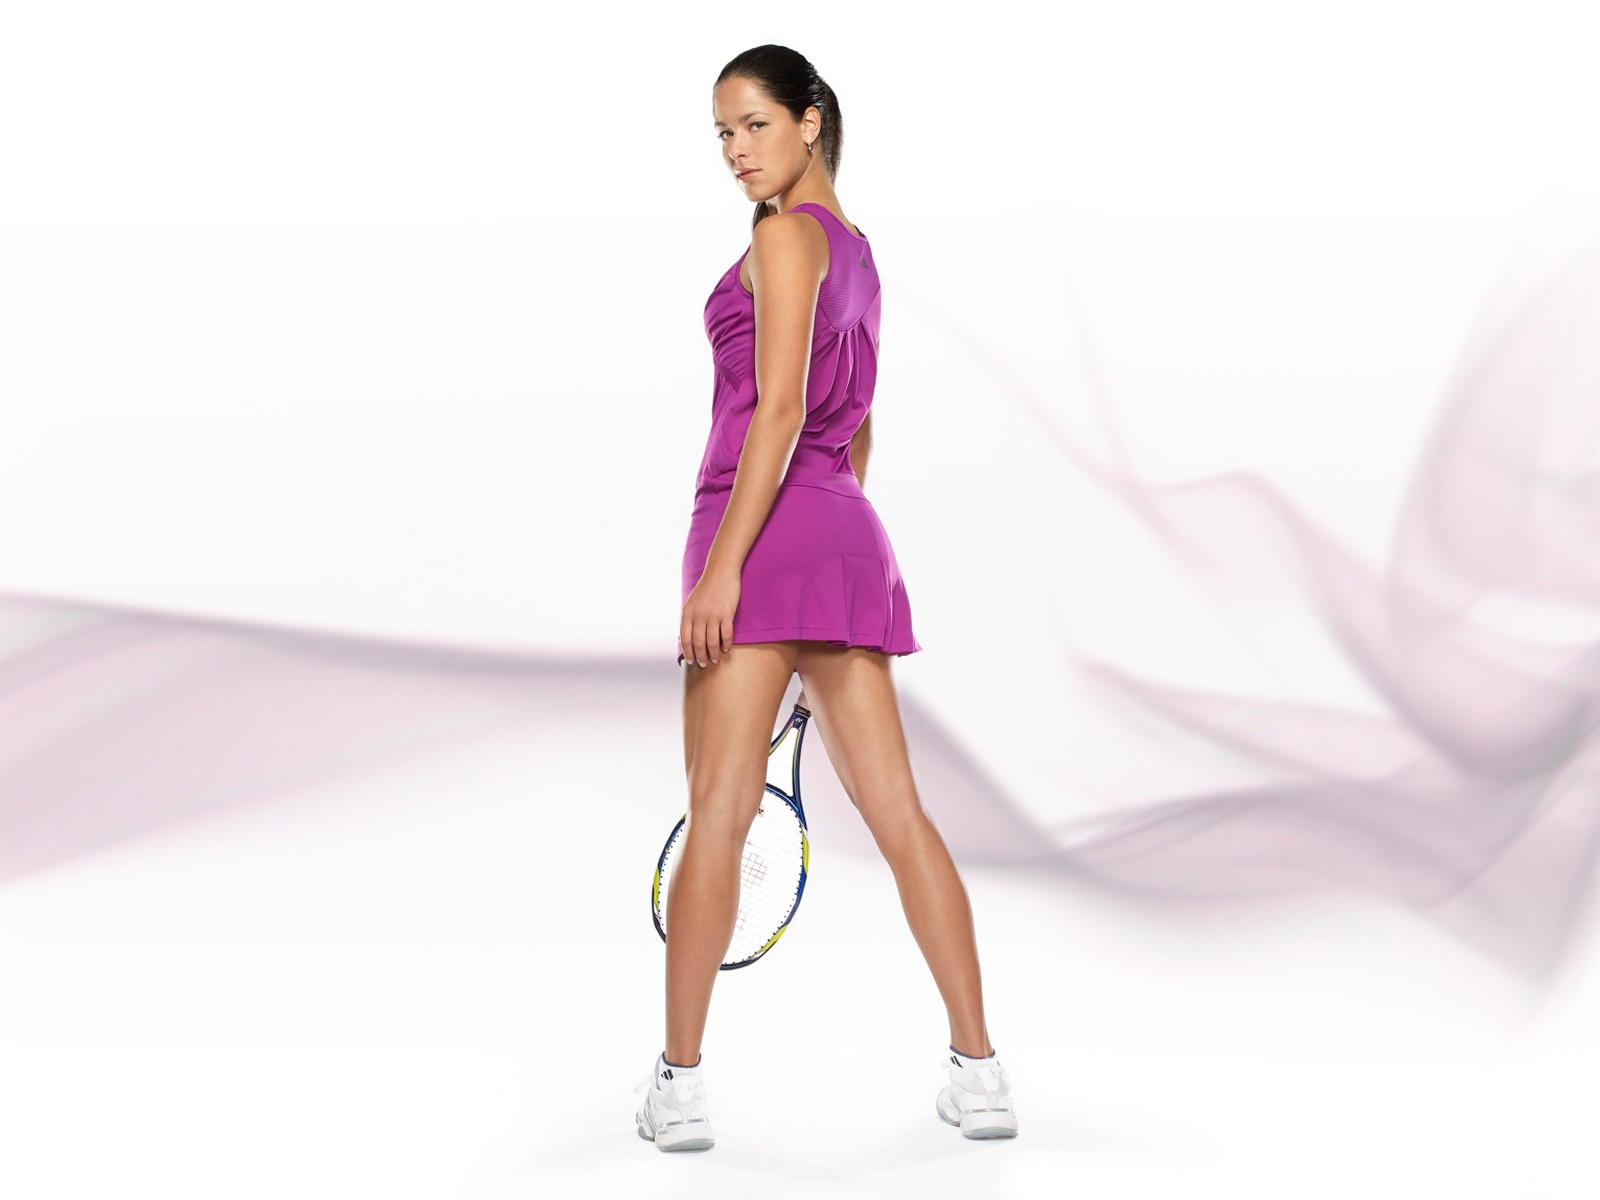 ana_ivanovic wallpapers hd A1